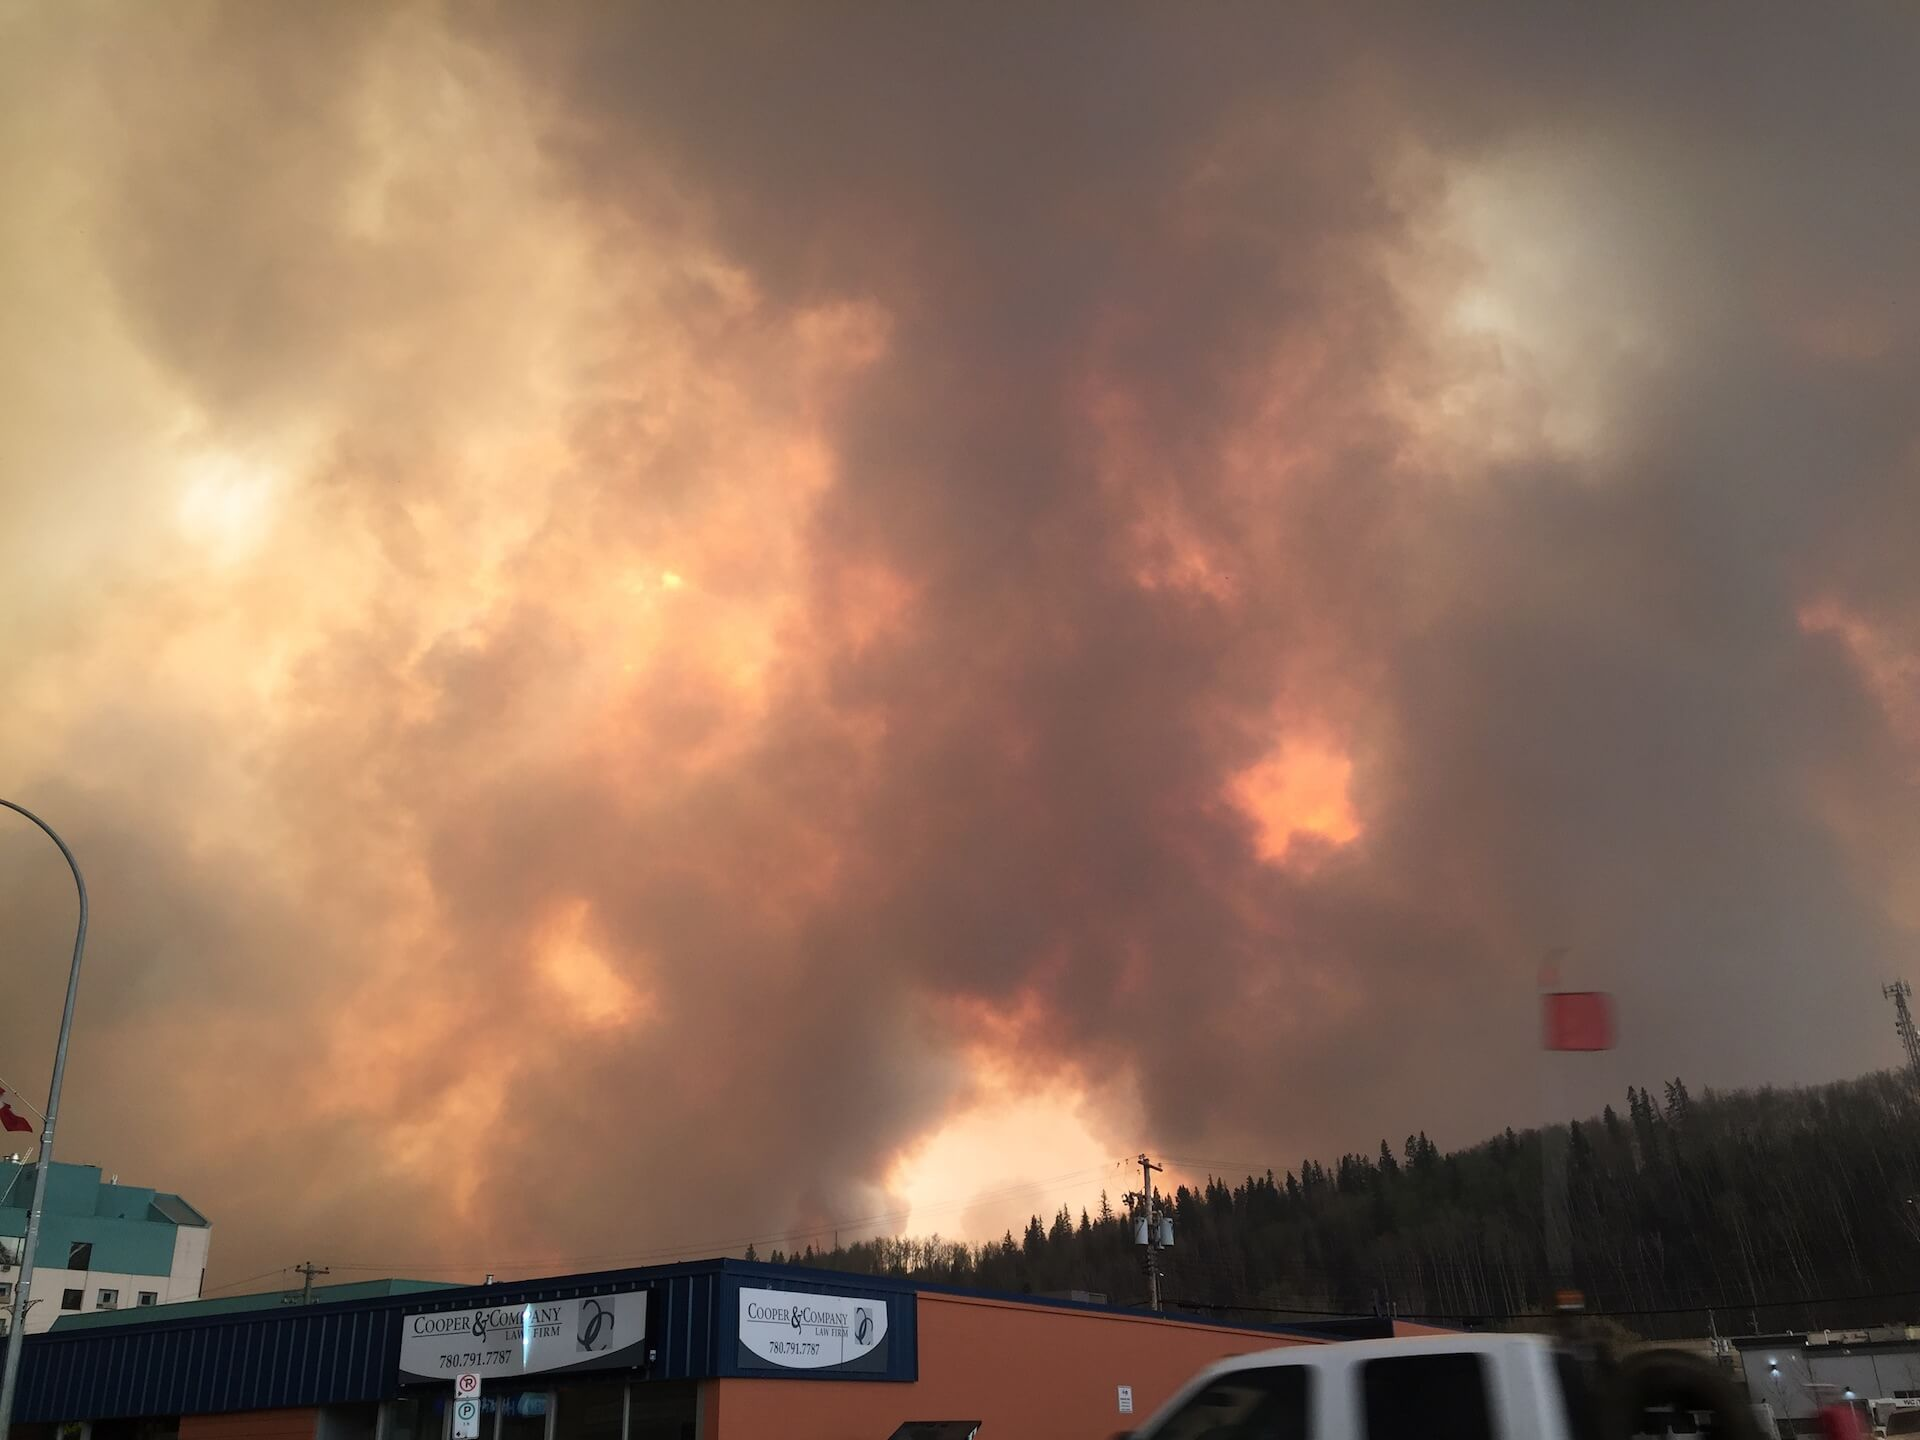 Photo of fire in Fort MacMurray taken by CUPW Sister Heather Cowan-Haskett